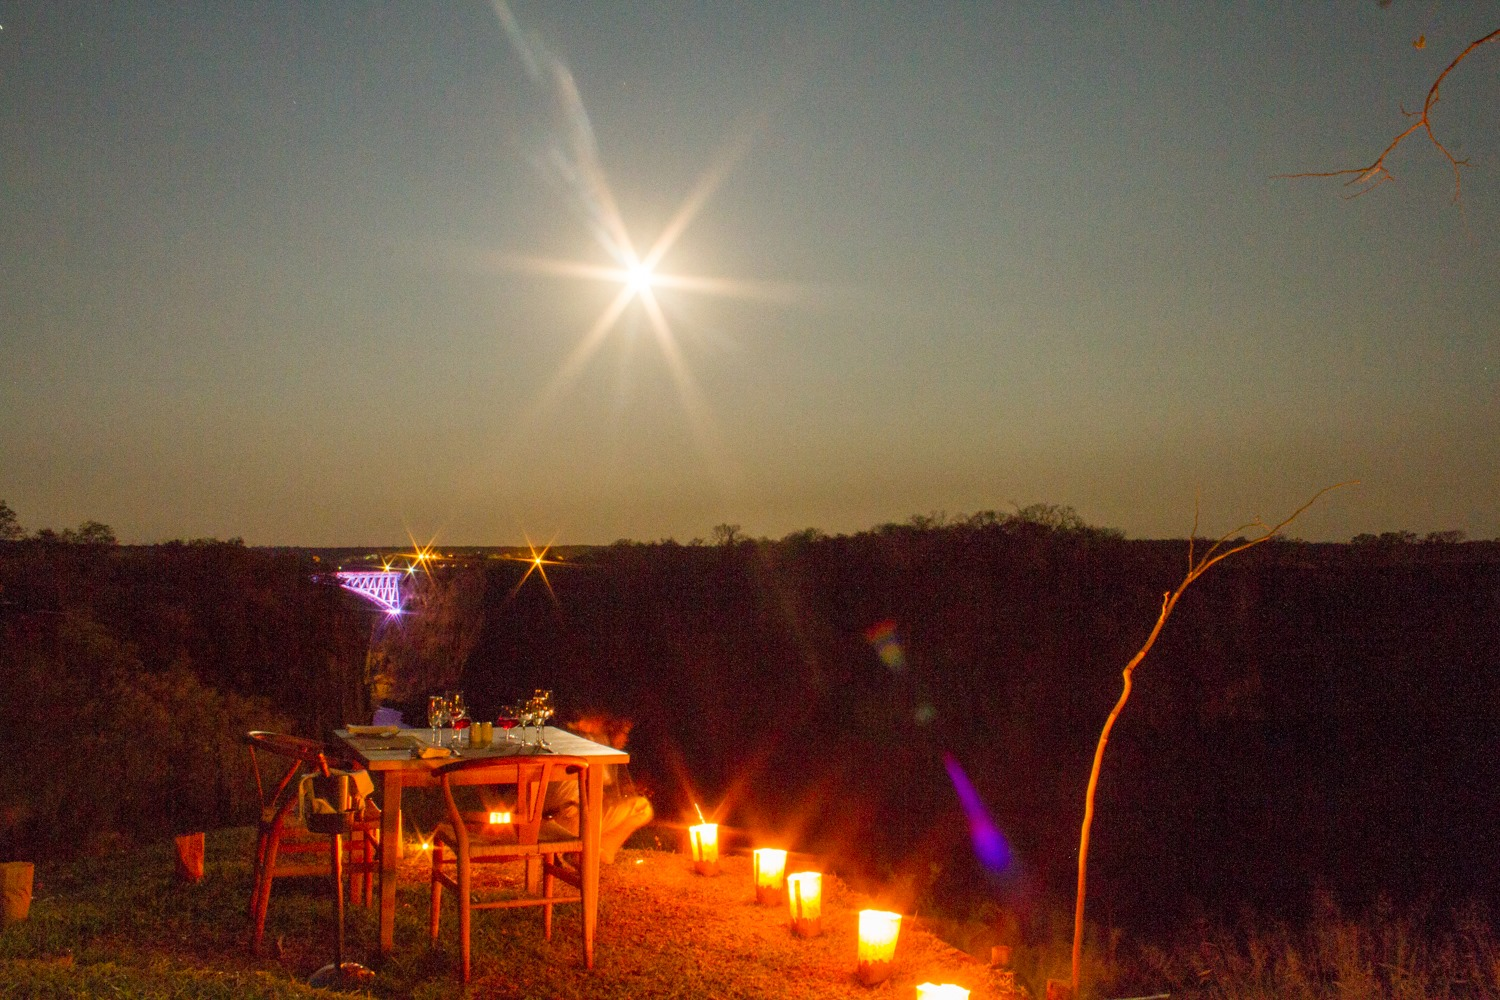 Dinner at the Lookout Cafe under the full moon - Victoria Falls, Zimbabwe